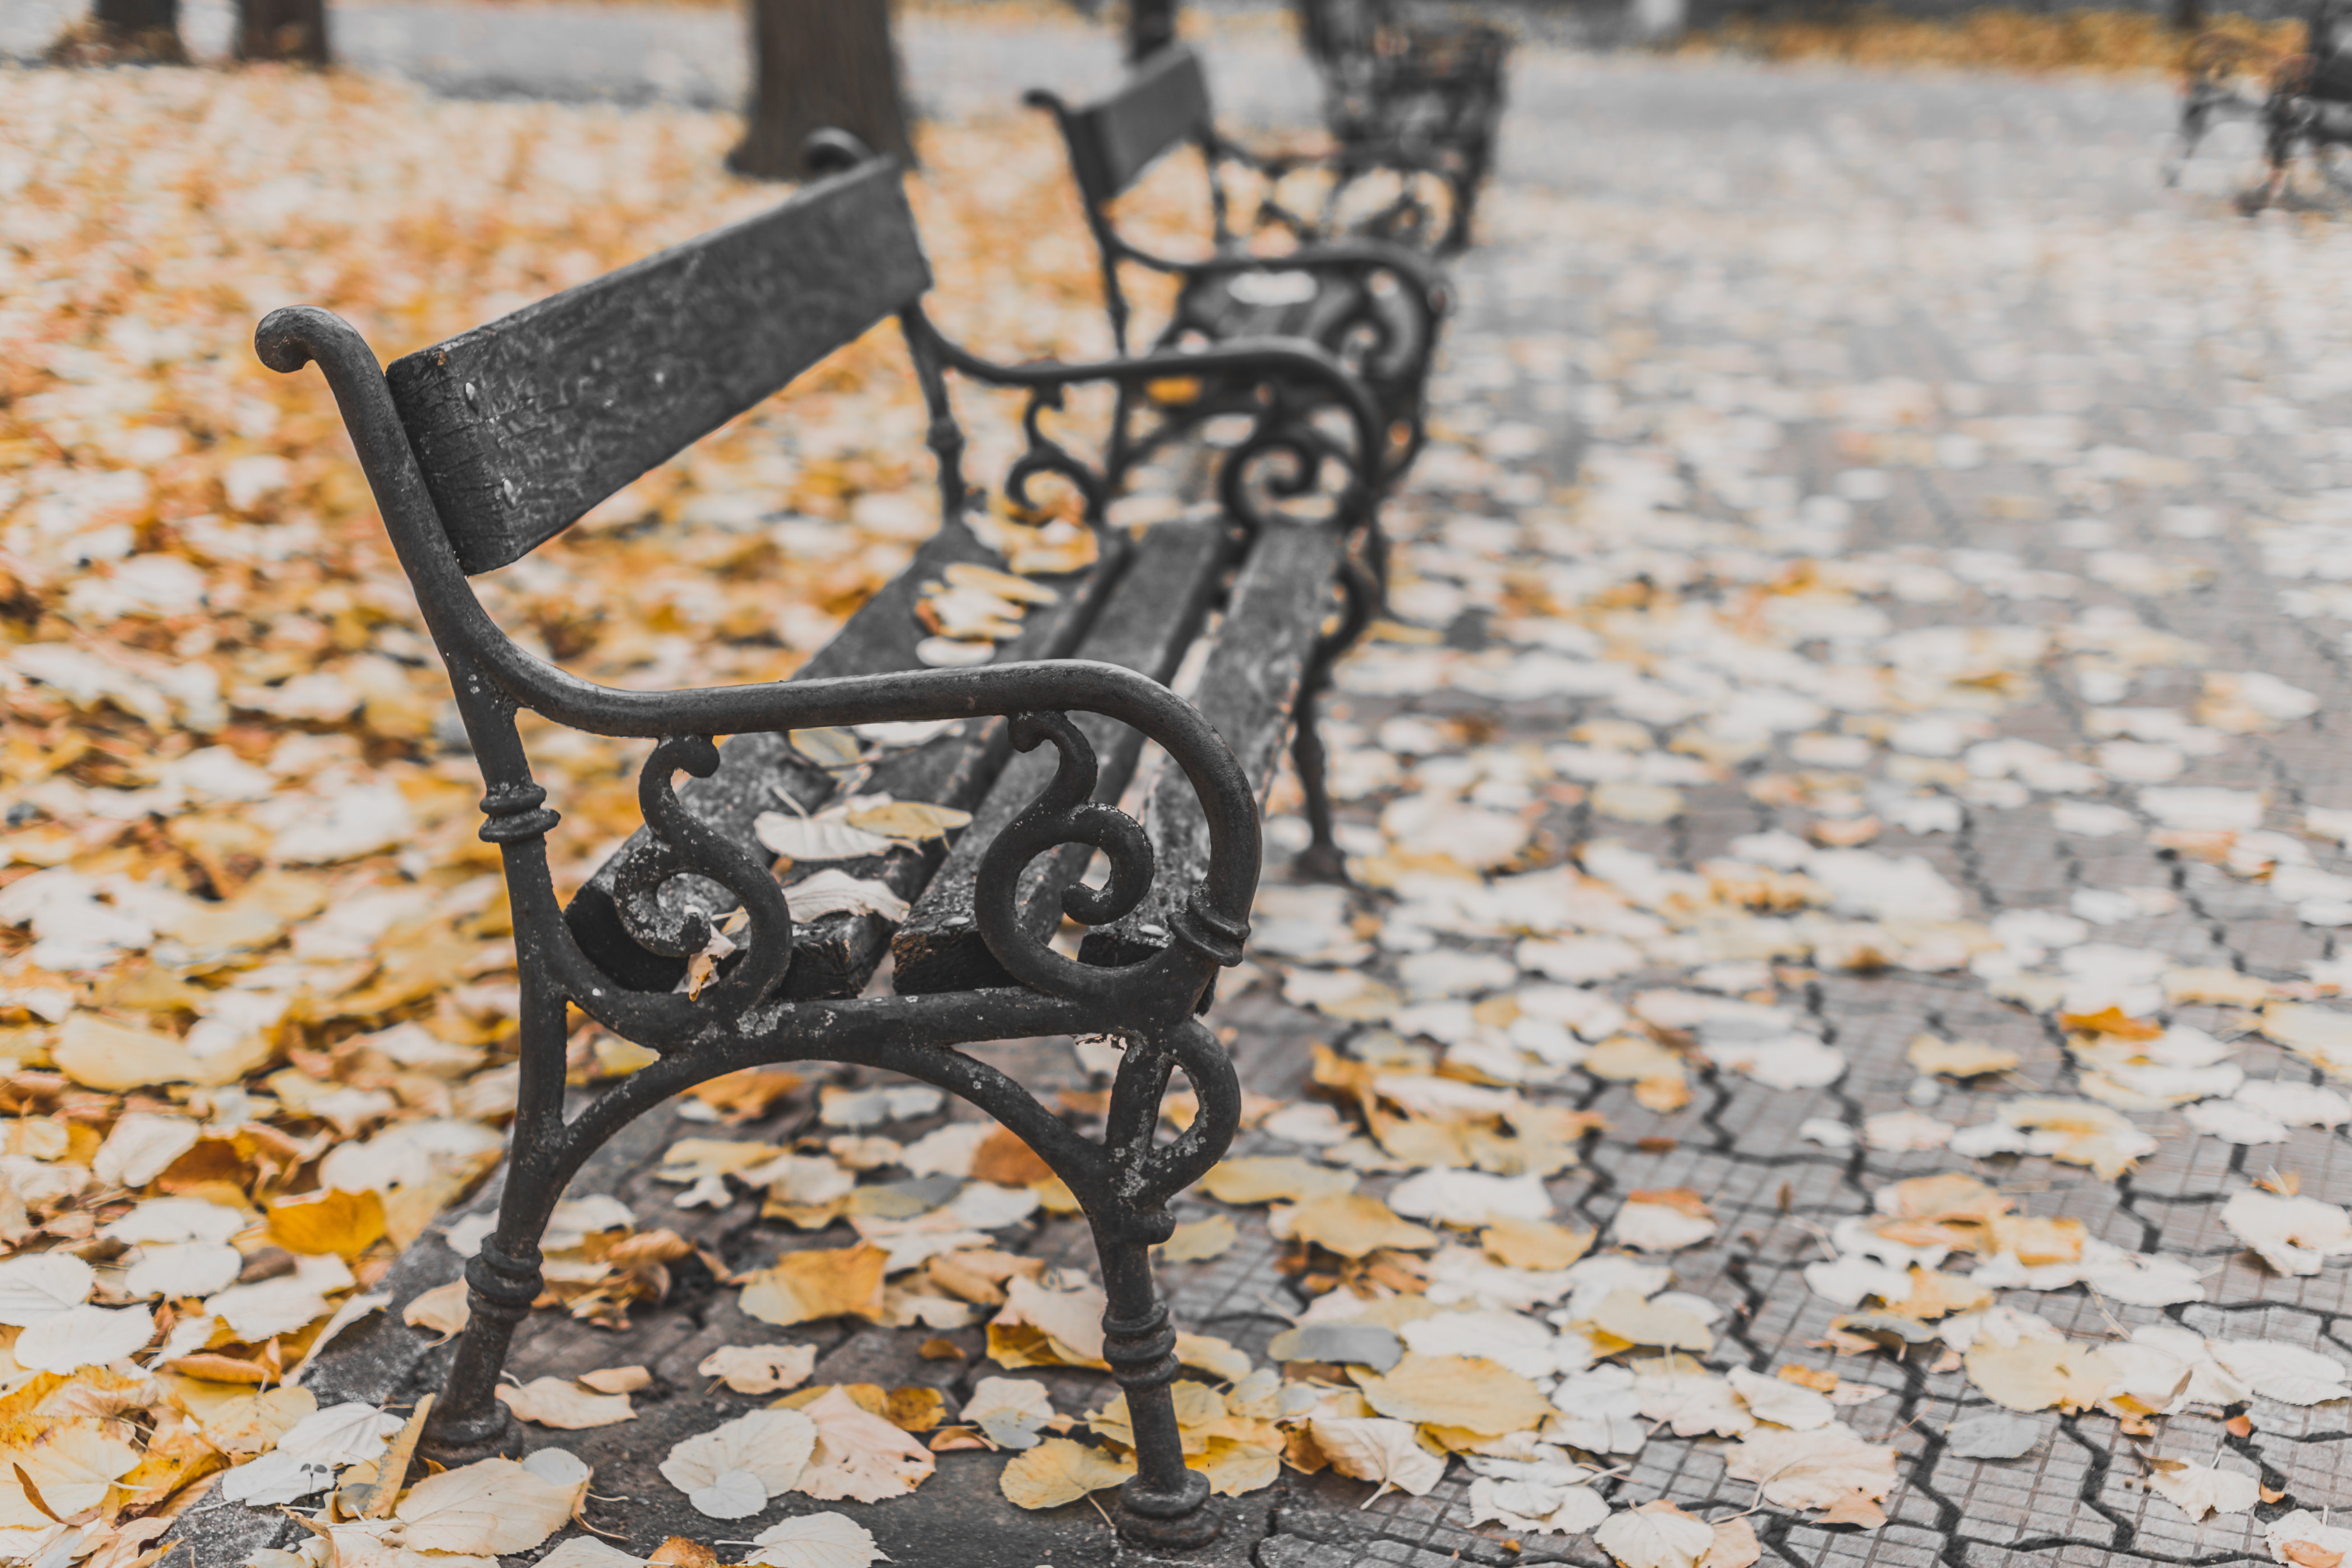 A row of park benches in Bucharest, each covered with autumn leaves